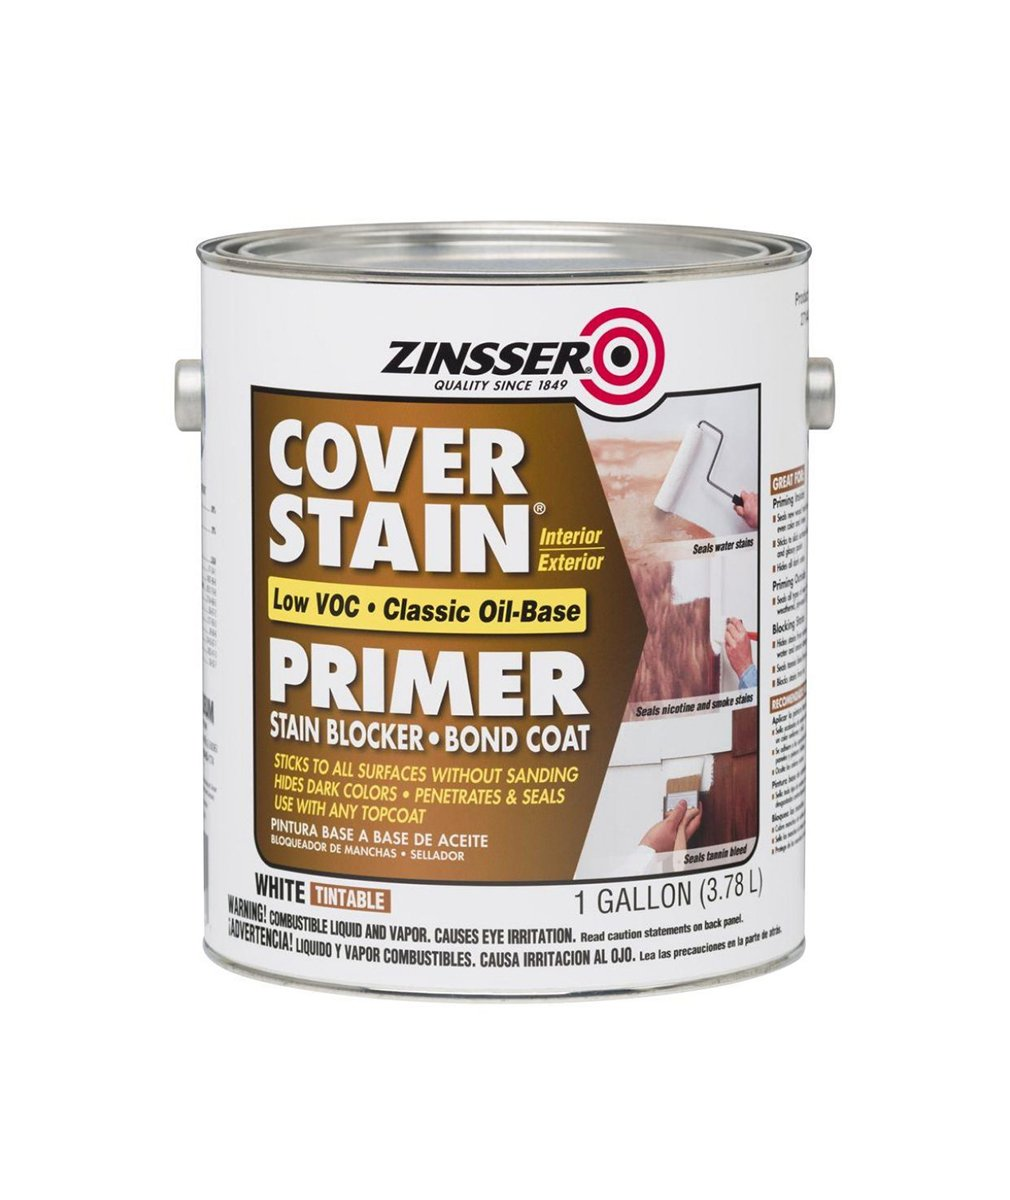 Zinsser Cover Stain Primer & Sealer gallon, available at Kelly-Moore Paints for Contractors.